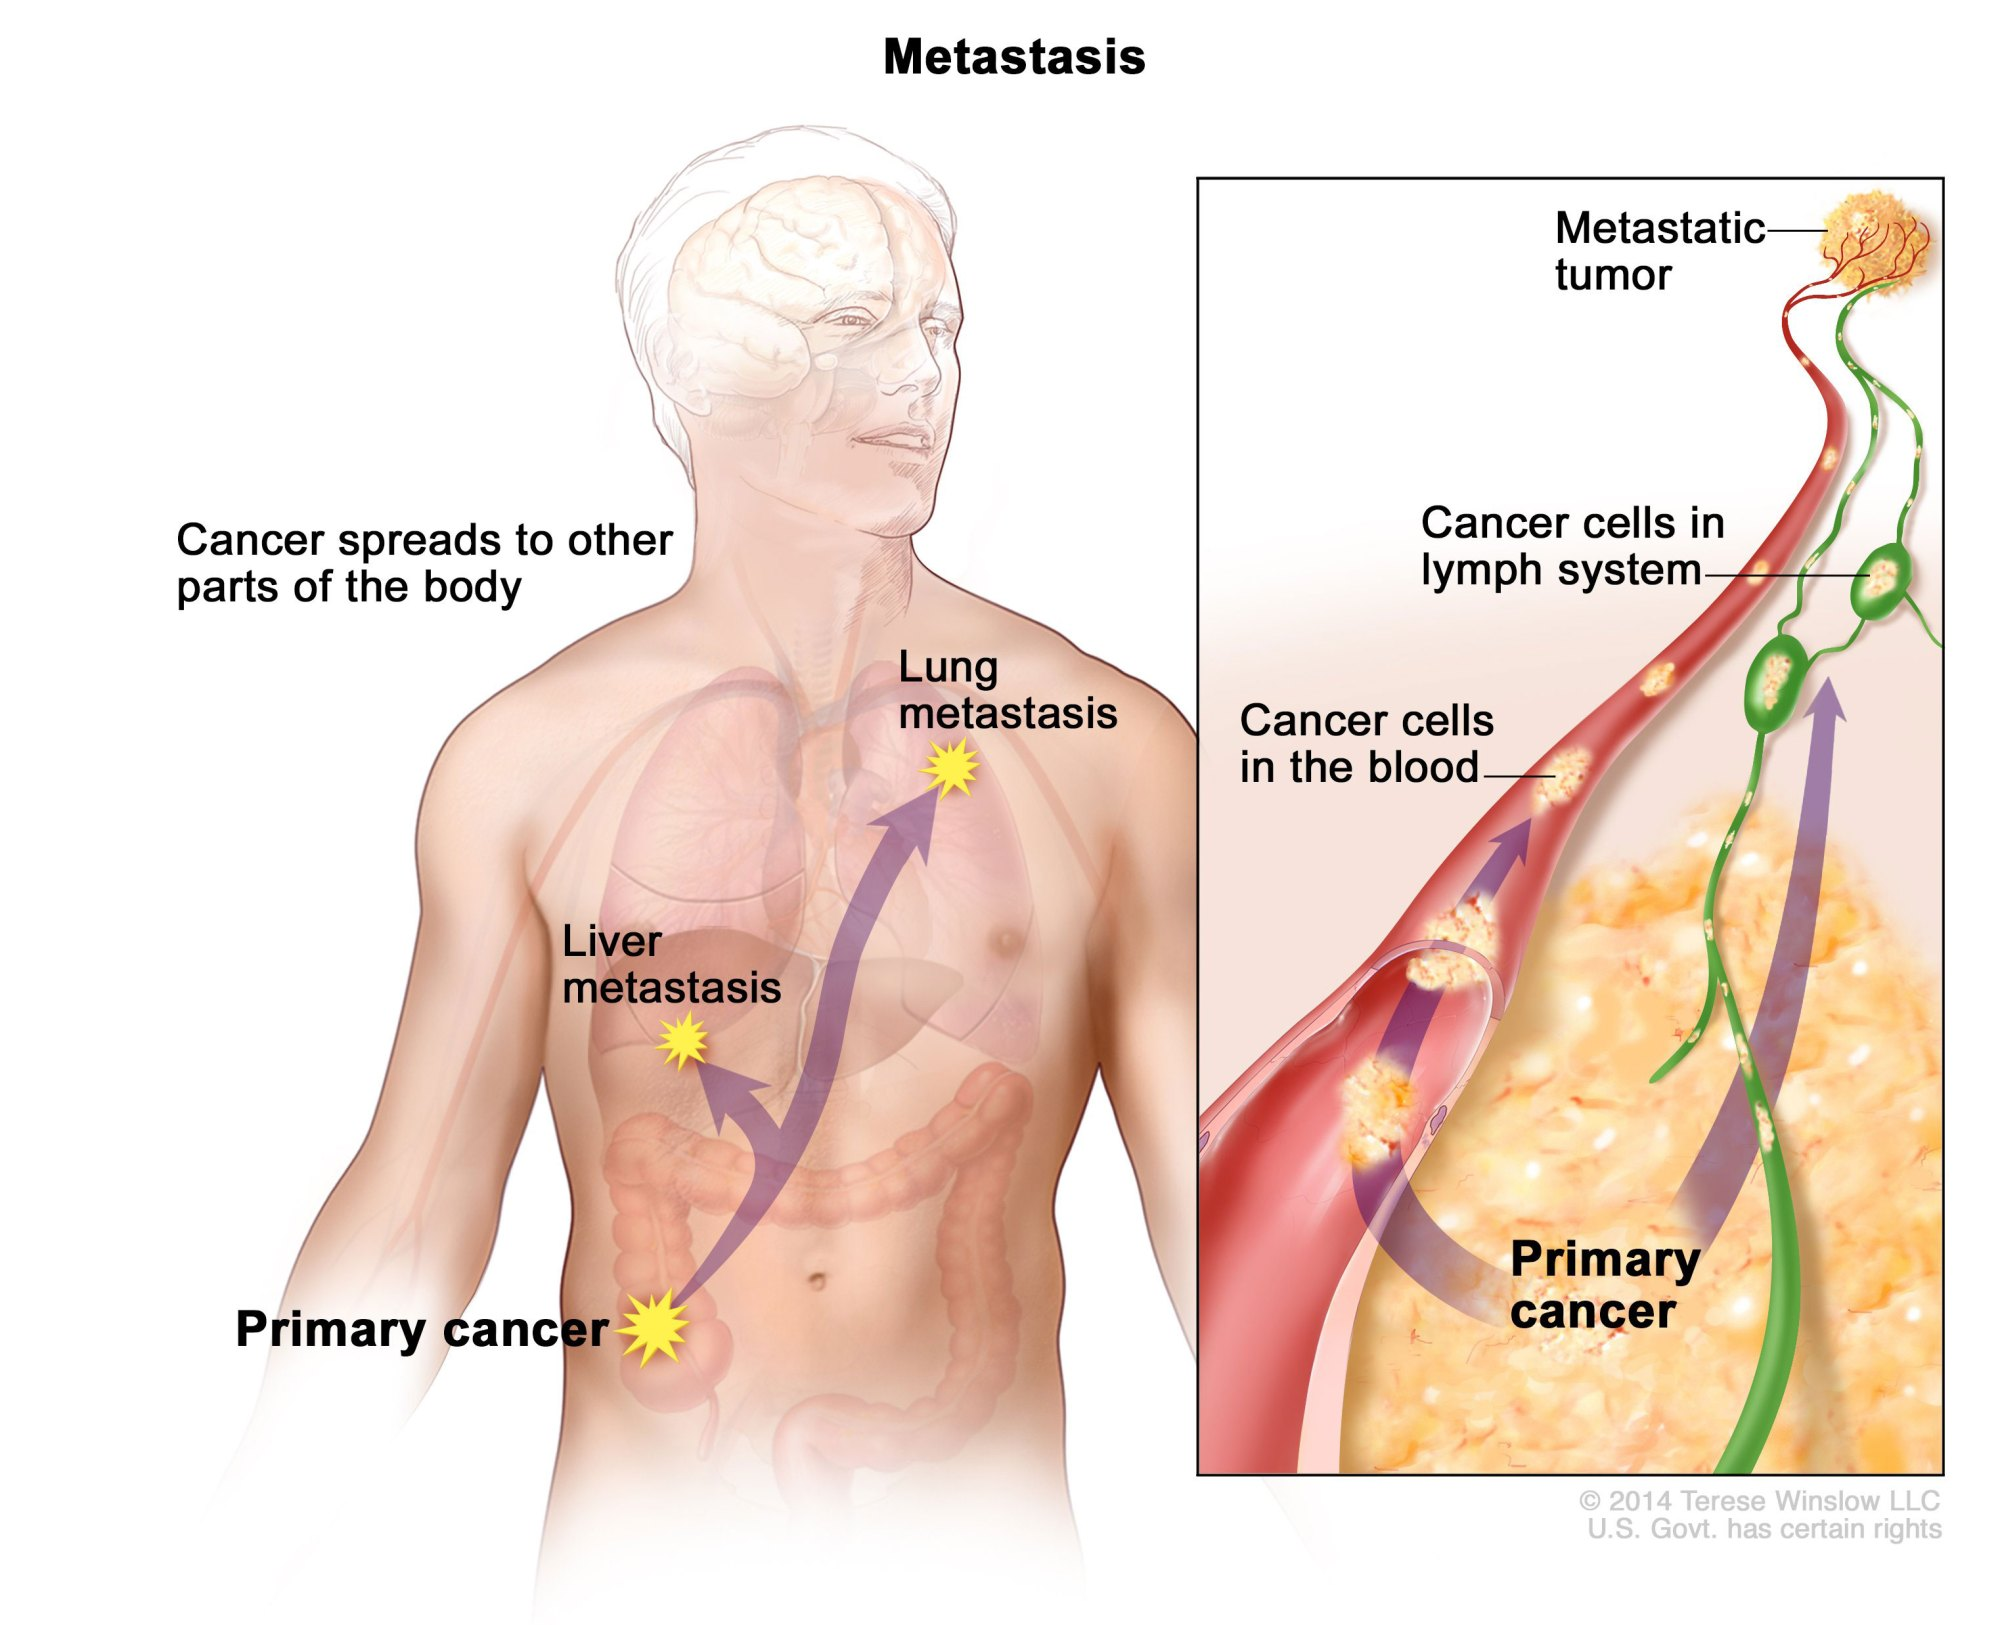 hight resolution of in metastasis cancer cells break away from where they first formed primary cancer travel through the blood or lymph system and form new tumors